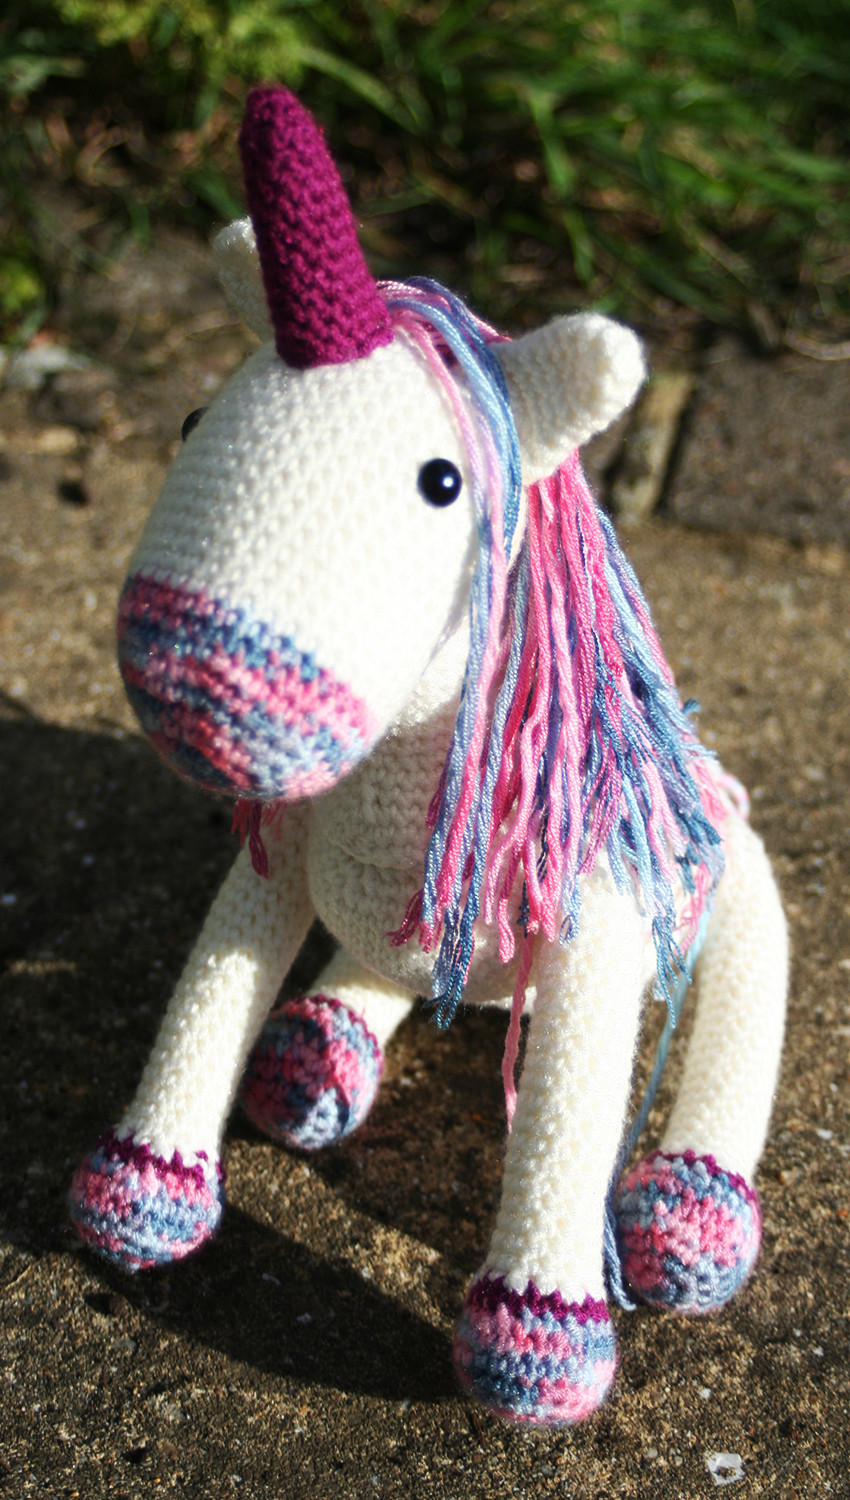 Luxury Crochet Unicorn Pattern Bright & Colorful with Easy Crochet Unicorn Blanket Pattern Of Marvelous 48 Photos Crochet Unicorn Blanket Pattern